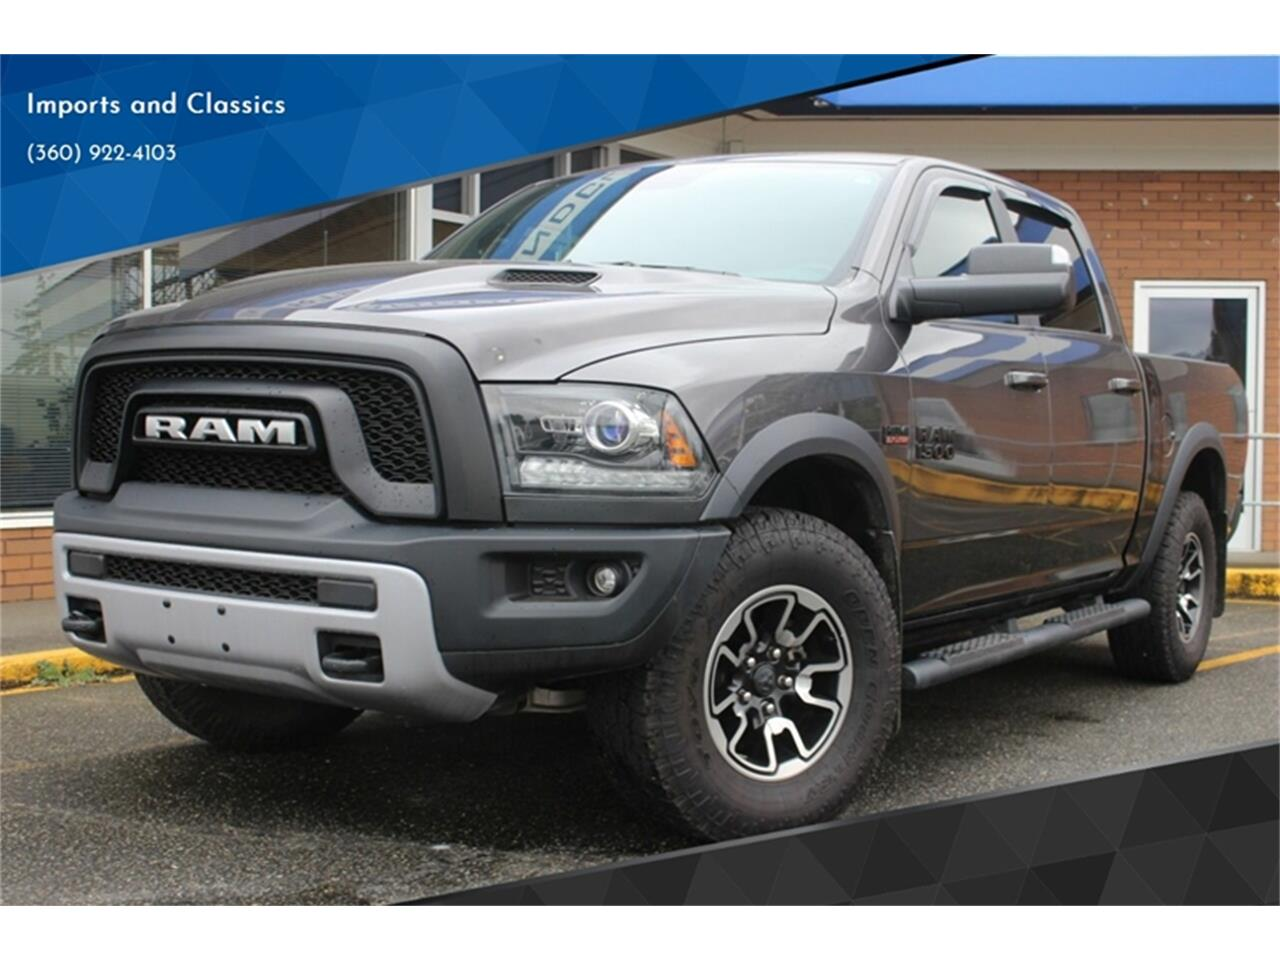 2017 Dodge Ram >> For Sale 2017 Dodge Ram 1500 In Lynden Washington